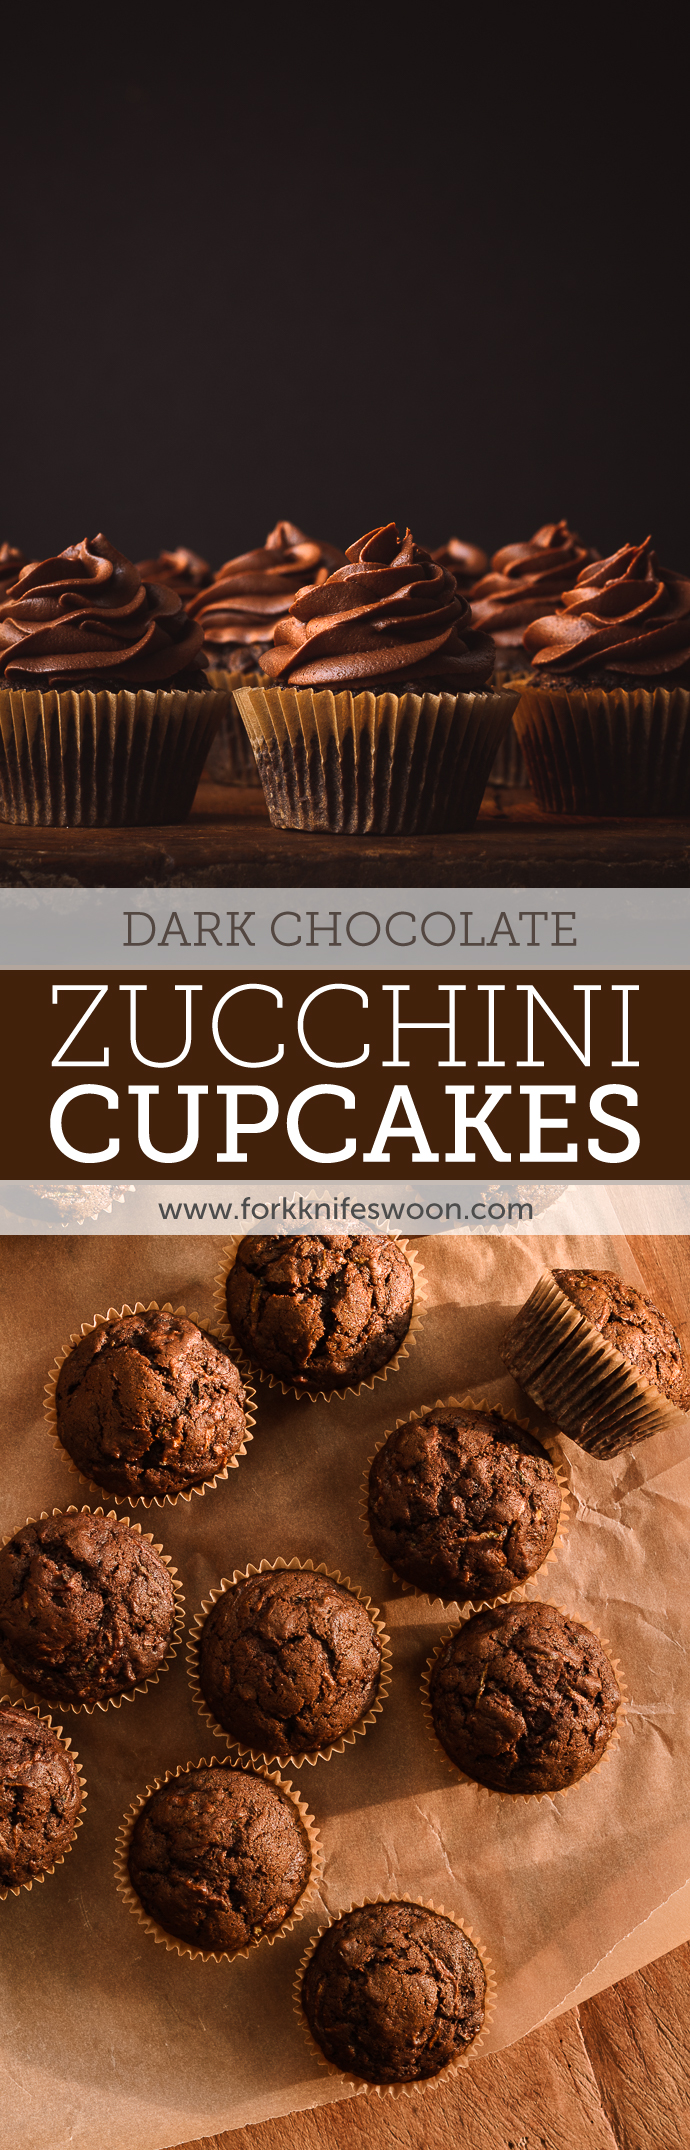 Dark Chocolate Zucchini Muffins or Cupcakes | Fork Knife Swoon @forkknifeswoon